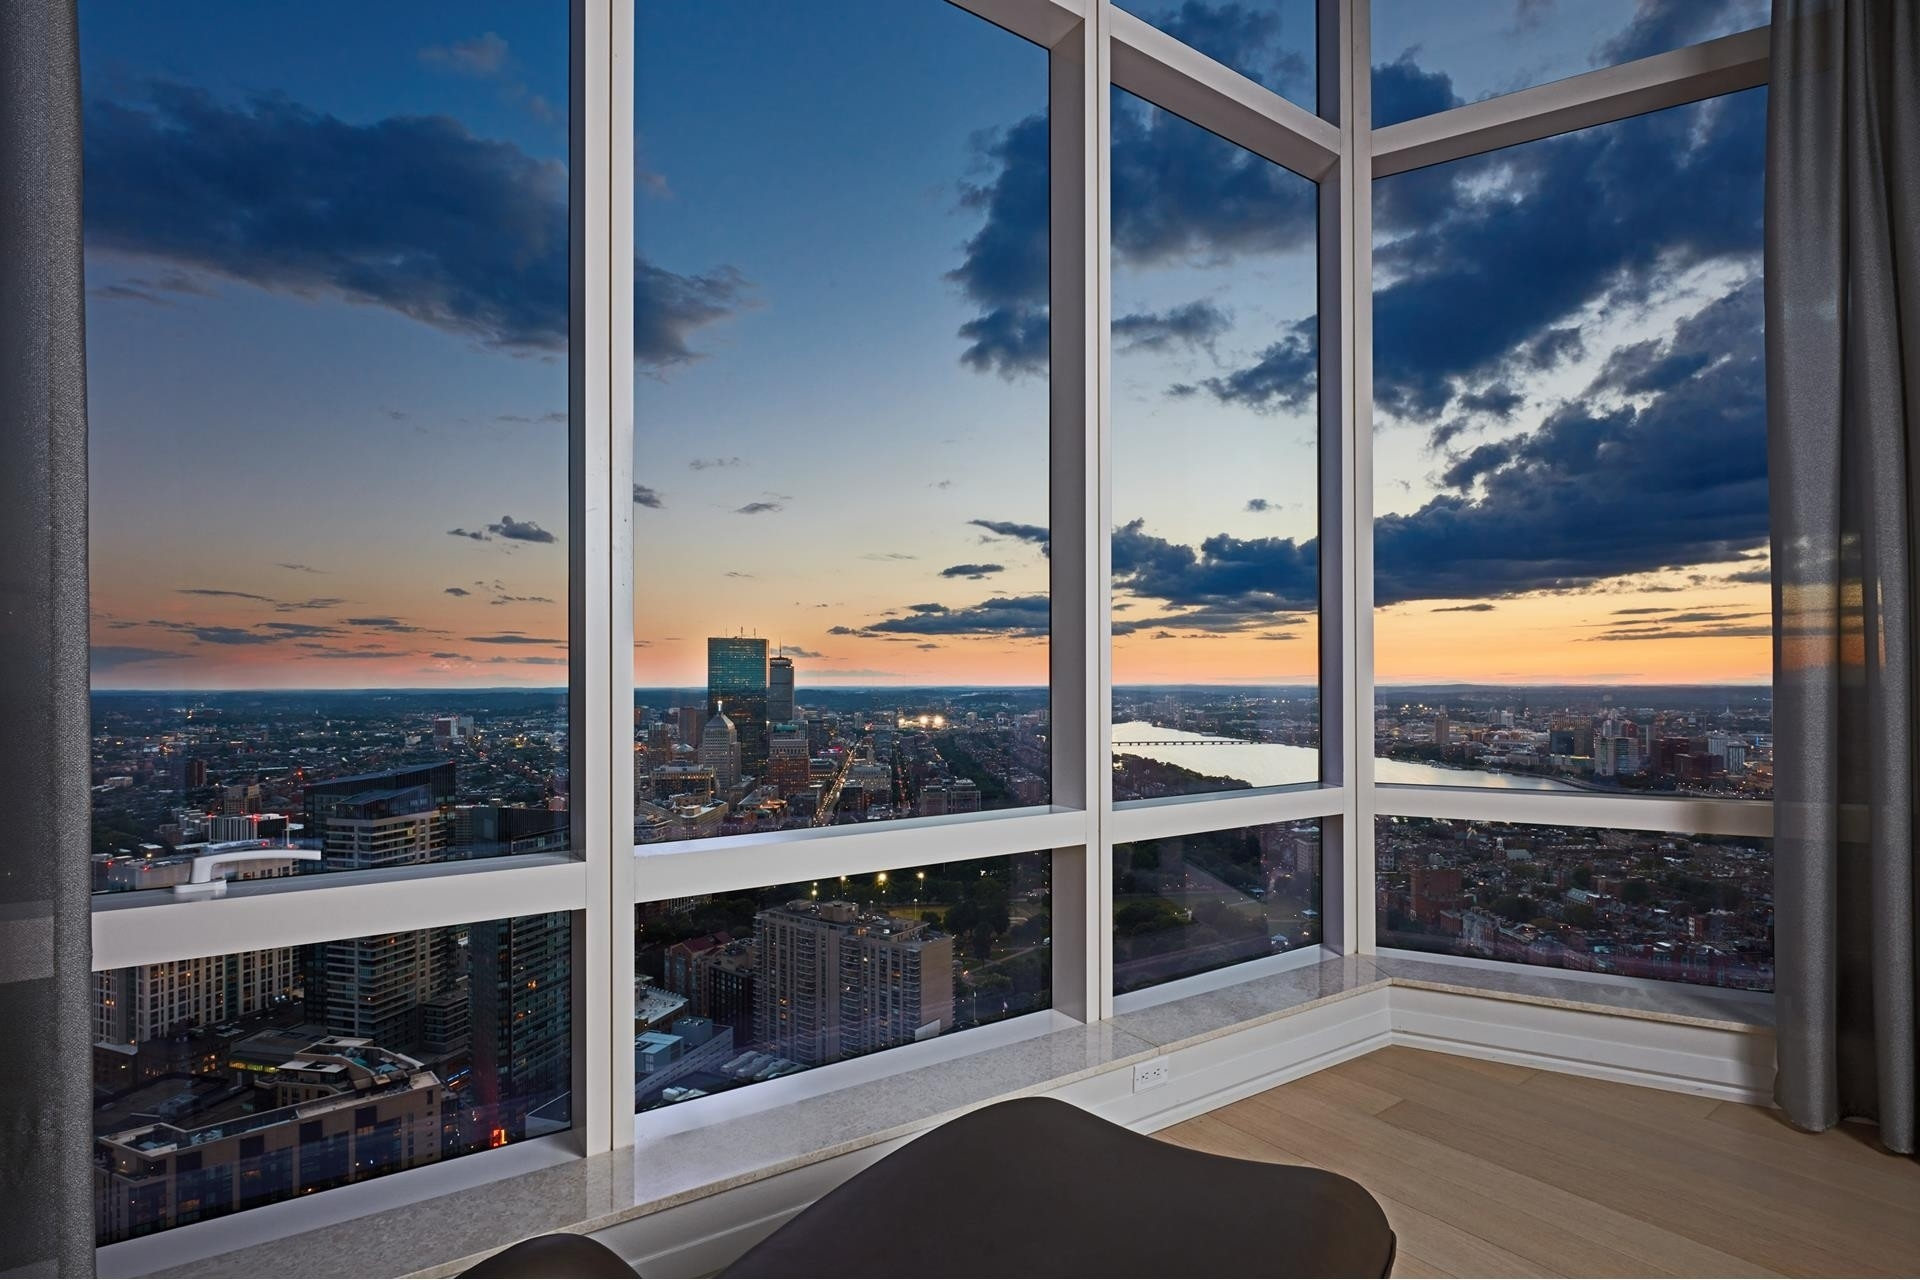 2. Condominiums for Sale at 1 Franklin Street , 5501 Downtown Boston, Boston, MA 02110